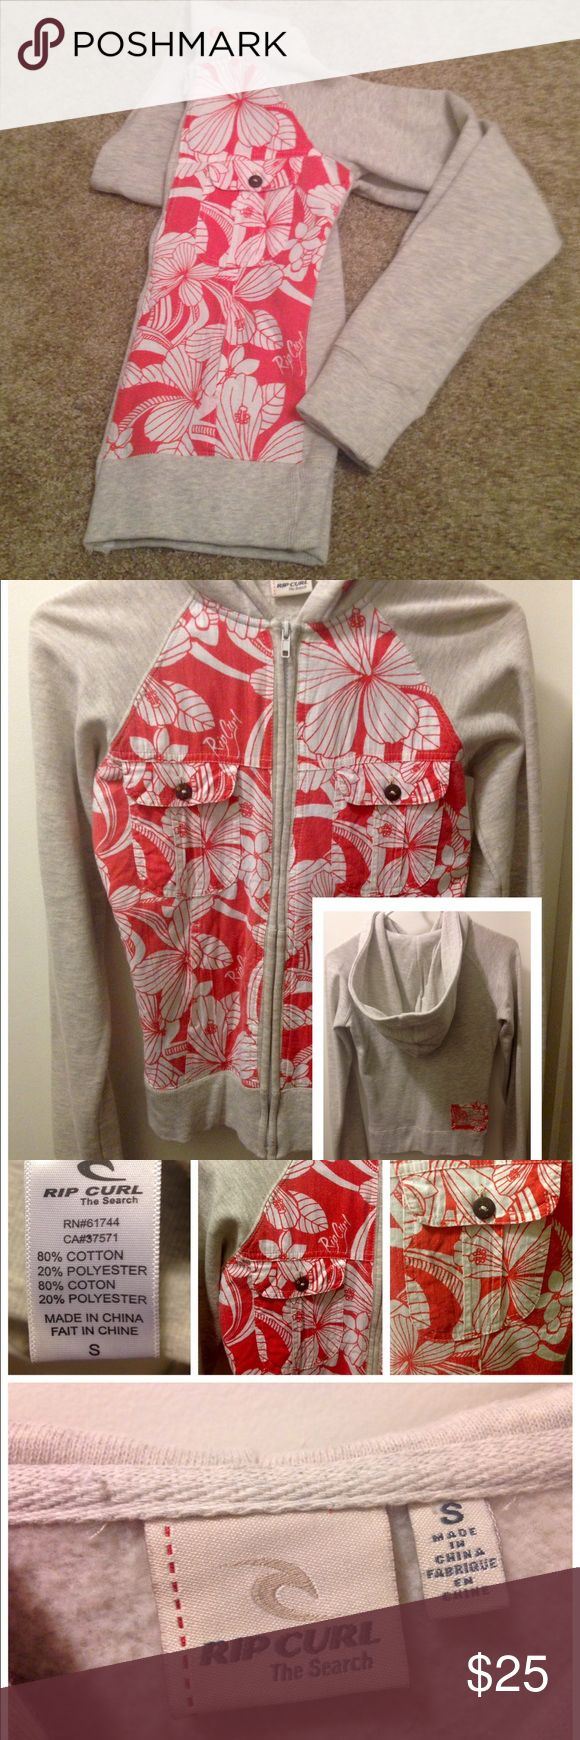 Rip Curl light gray floral zip up hoodie Gently used great condition, used once. Two button up pockets in front and two side double hand pockets. Graphics in front and graphic patch on back side. Rip Curl Tops Sweatshirts & Hoodies